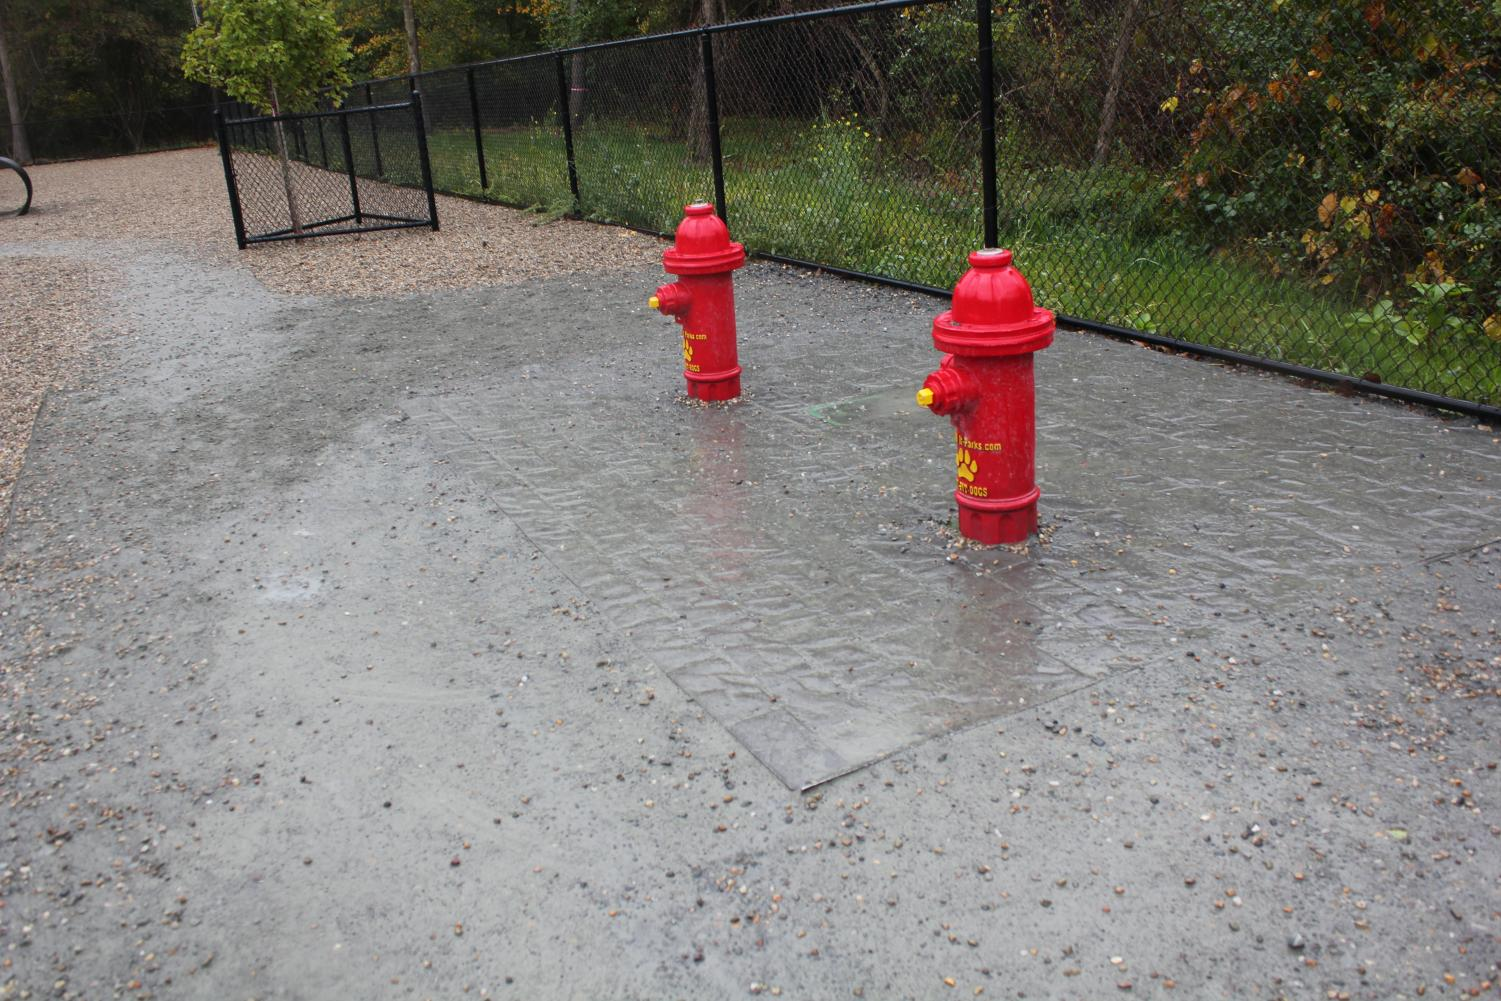 Fire+hydrants+painted+a+bright+red+are+located+inside+the+Abington+Dog+Park.+photographed+October+9%2C+2019.